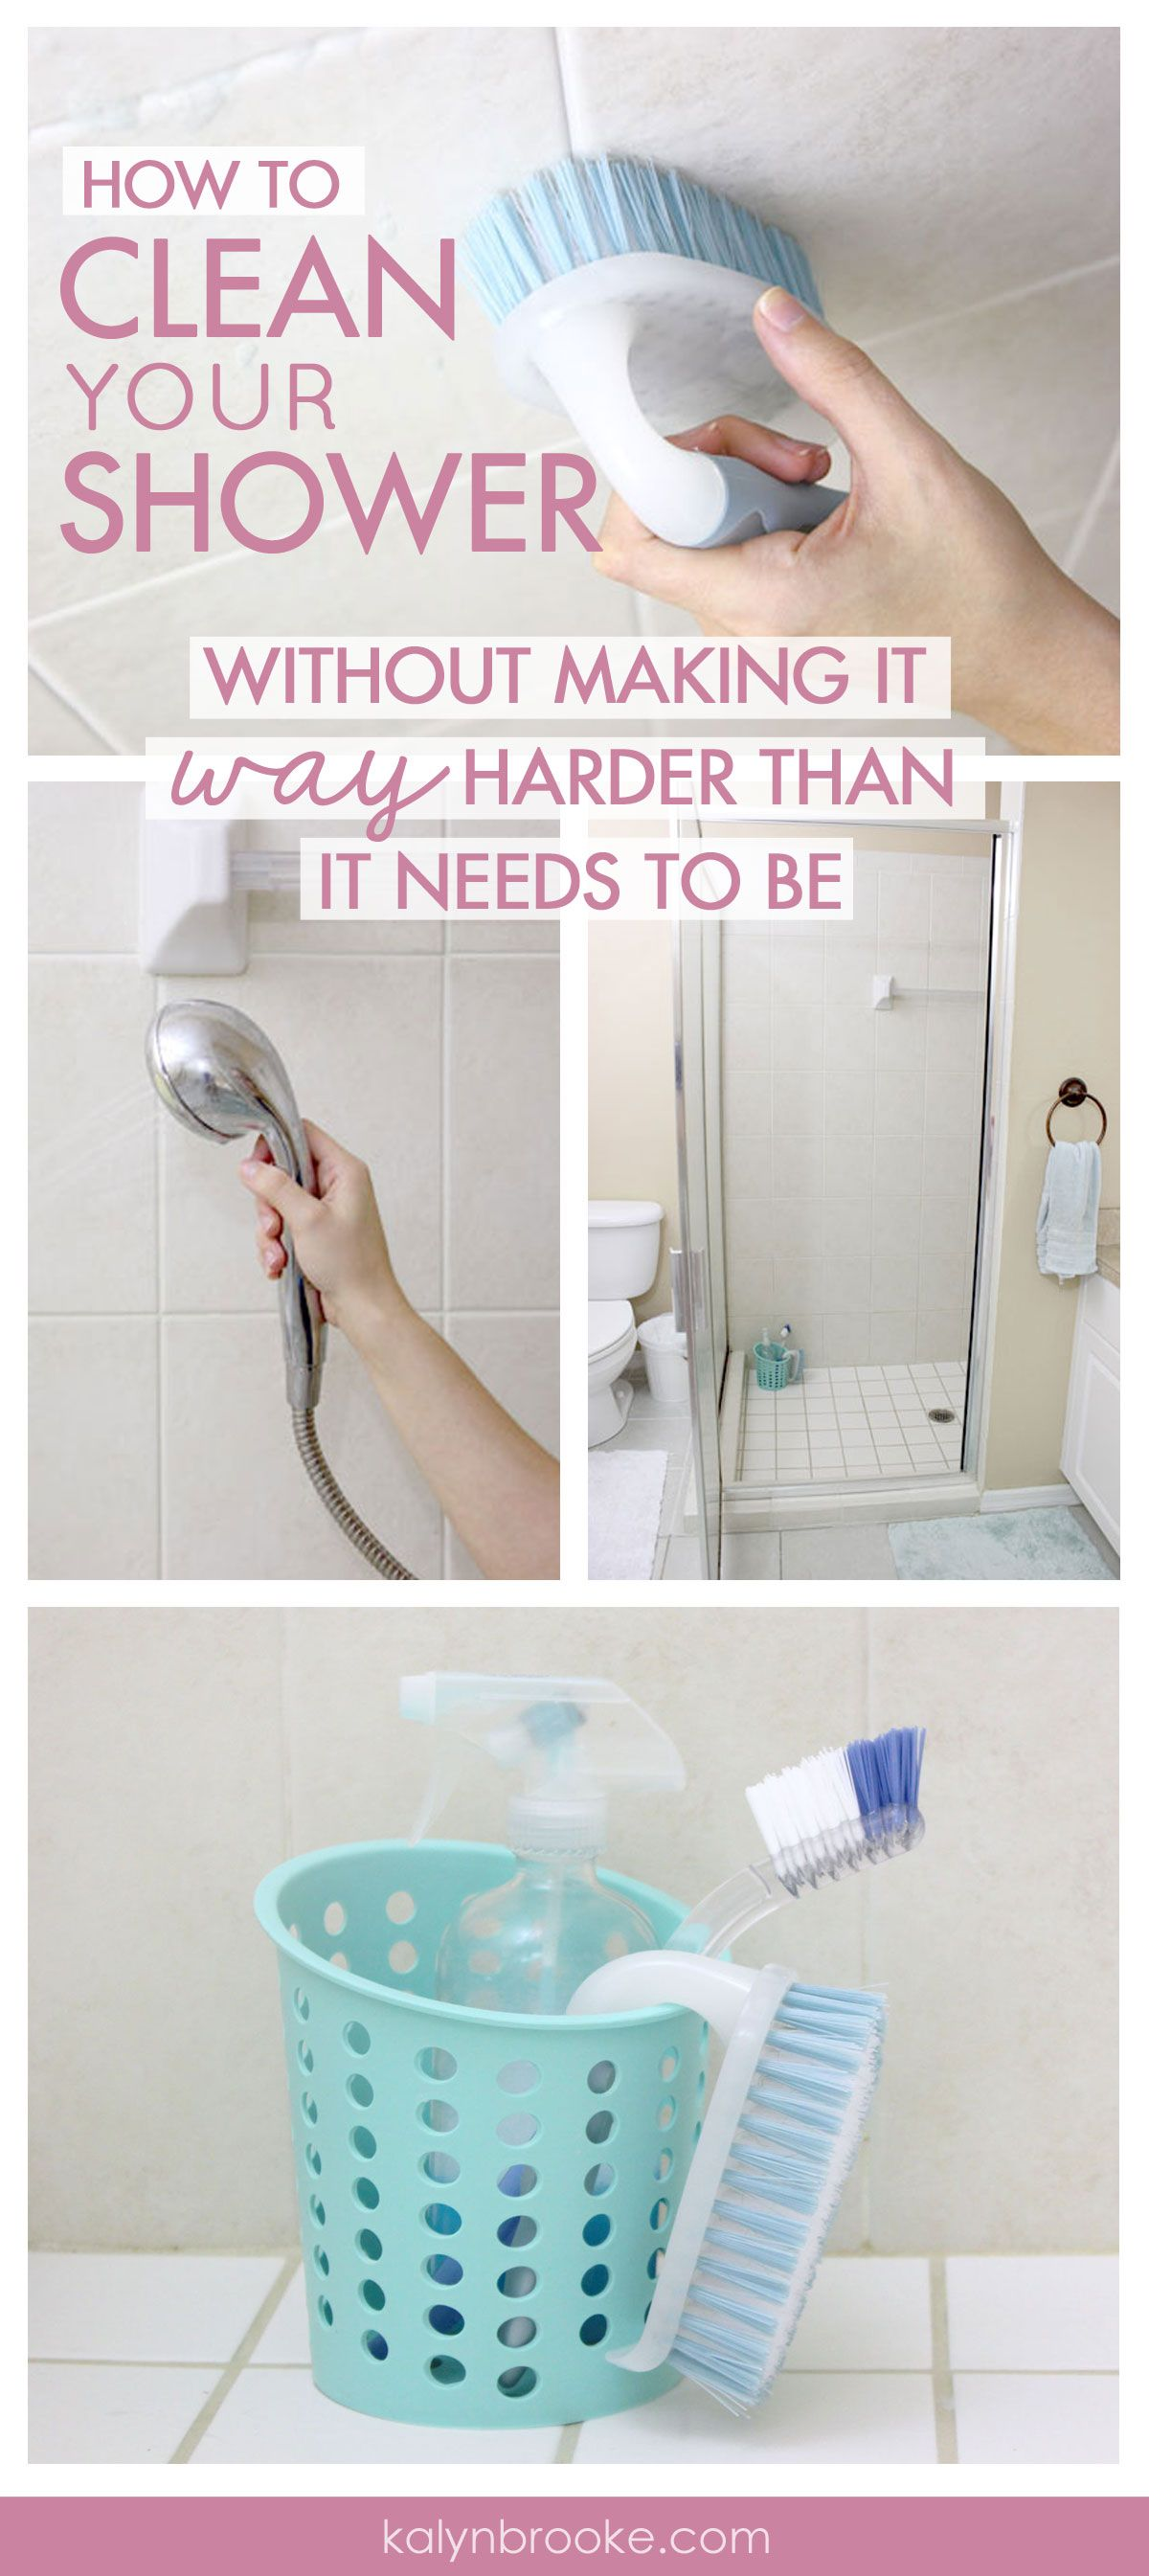 What can you do to make cleaning the shower easier faster and